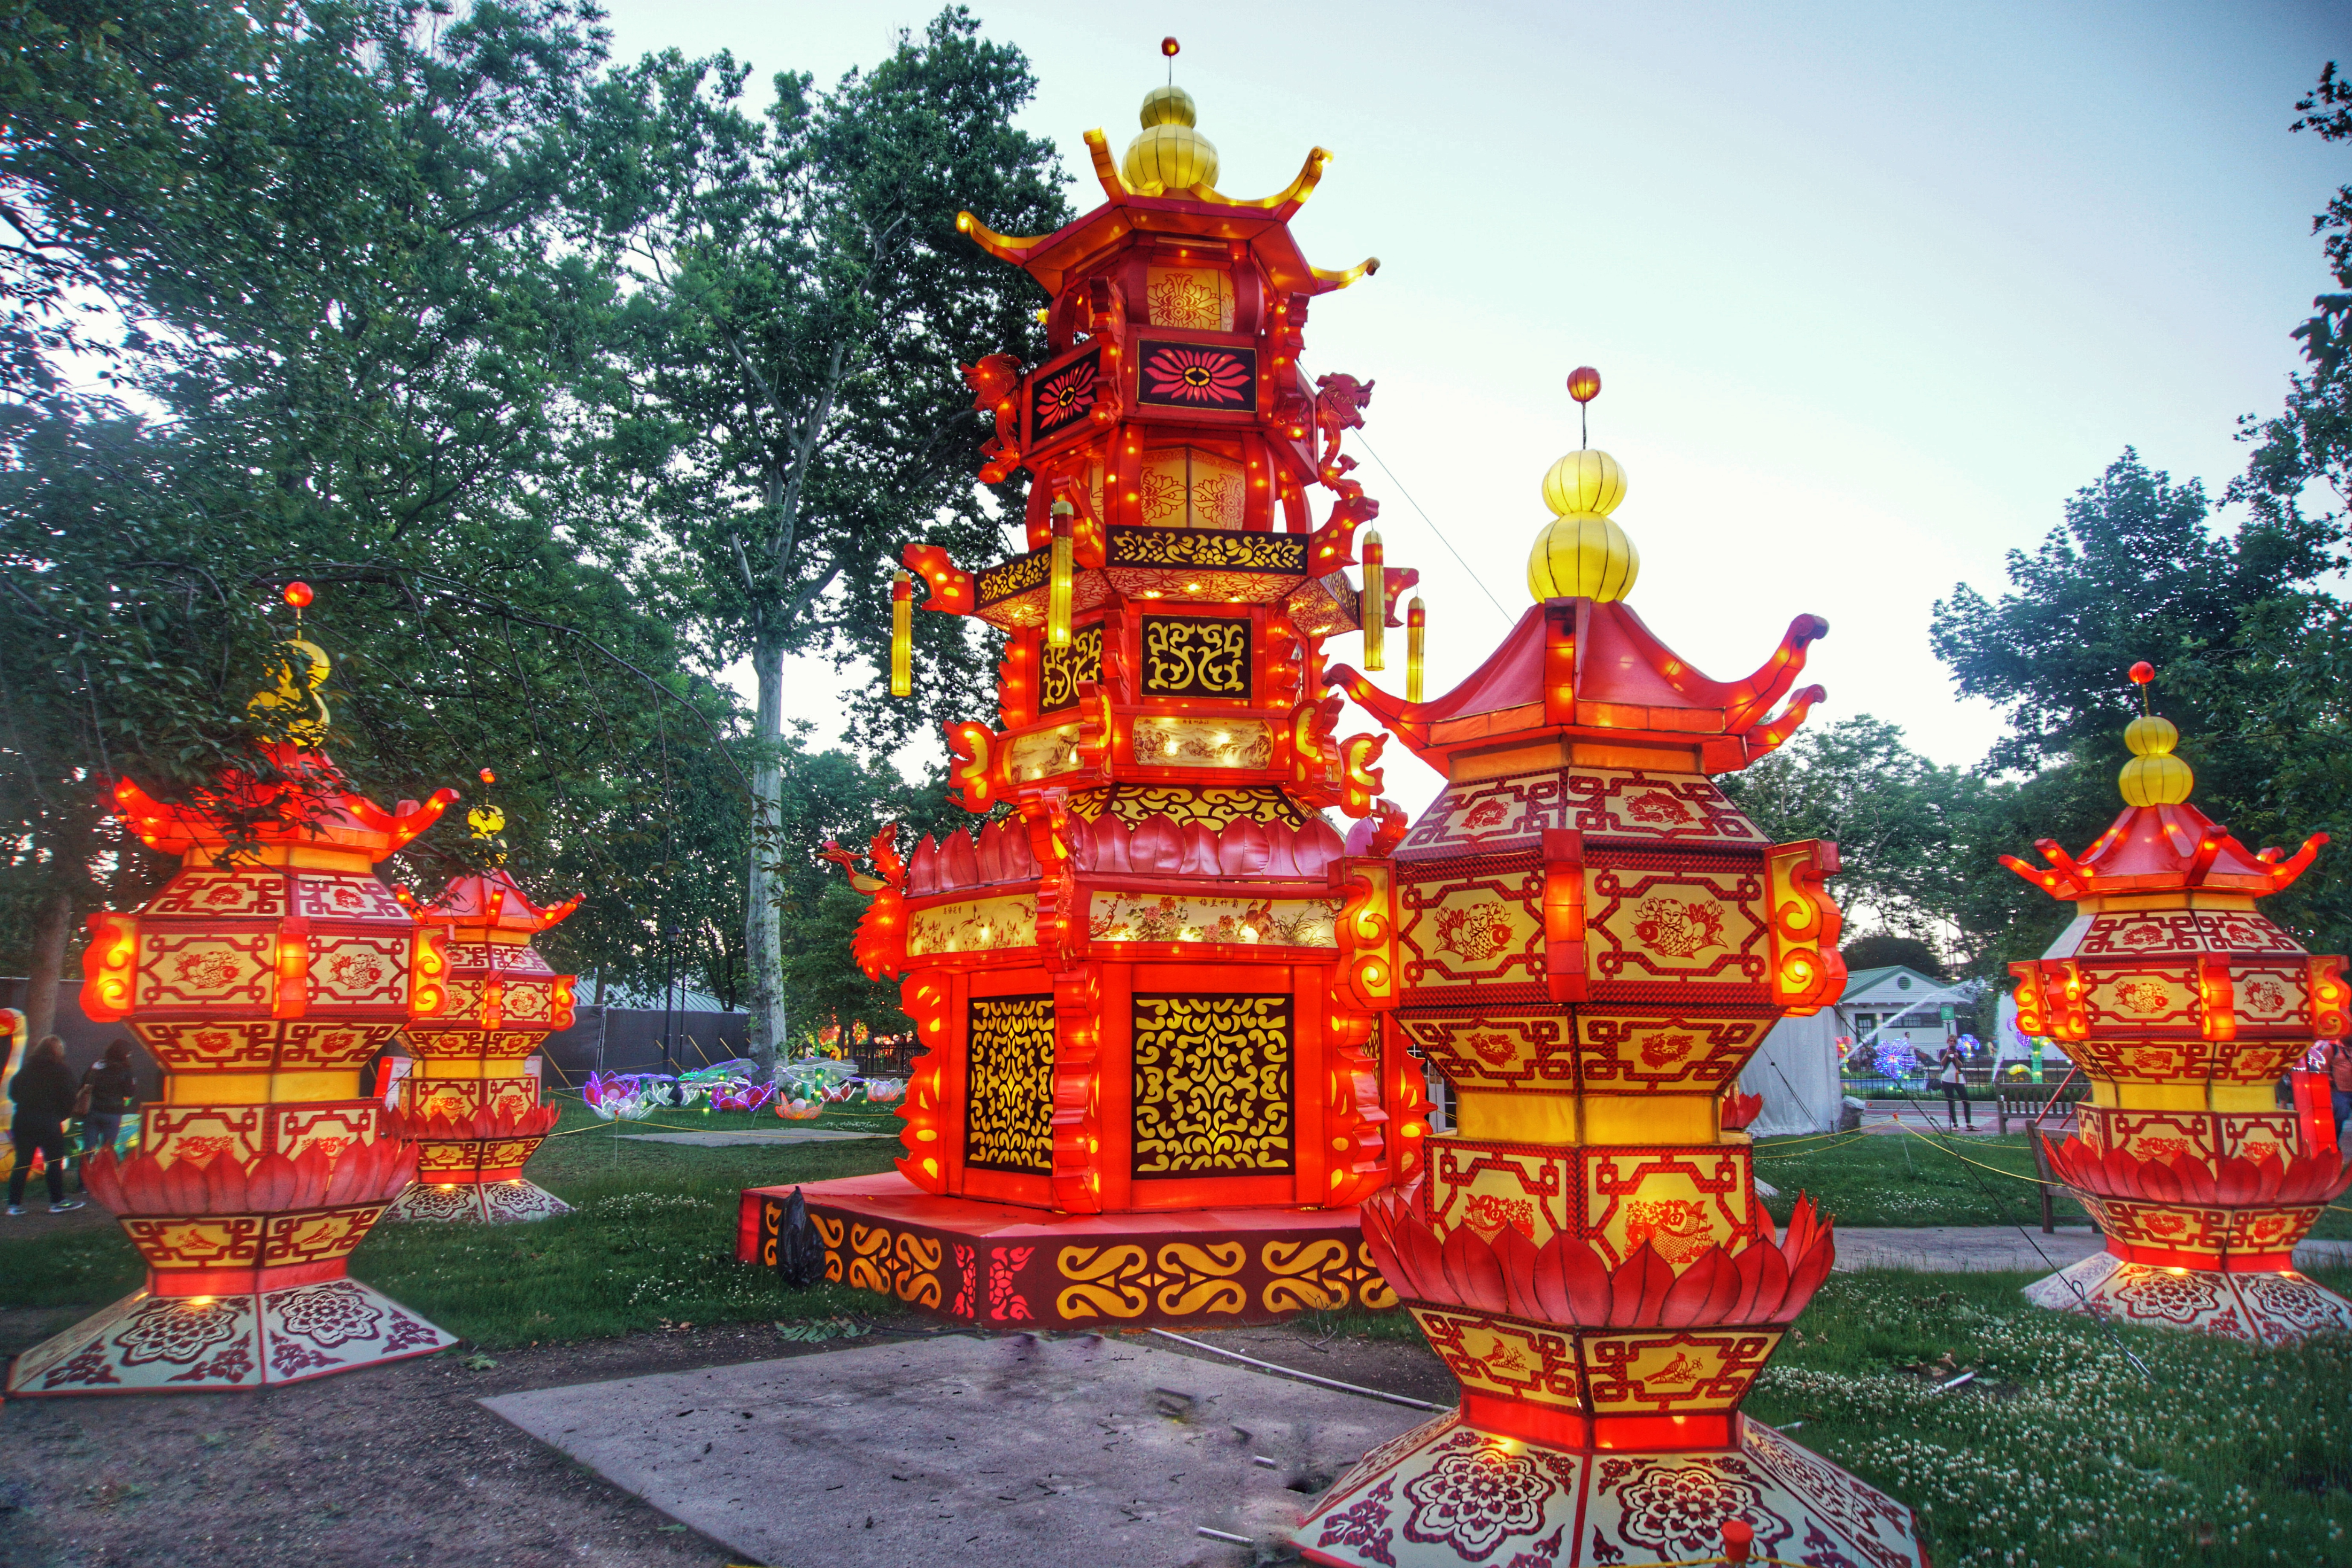 Happy Chinese Lantern Festival In Photos Philly Chinese Lantern Festival 2016